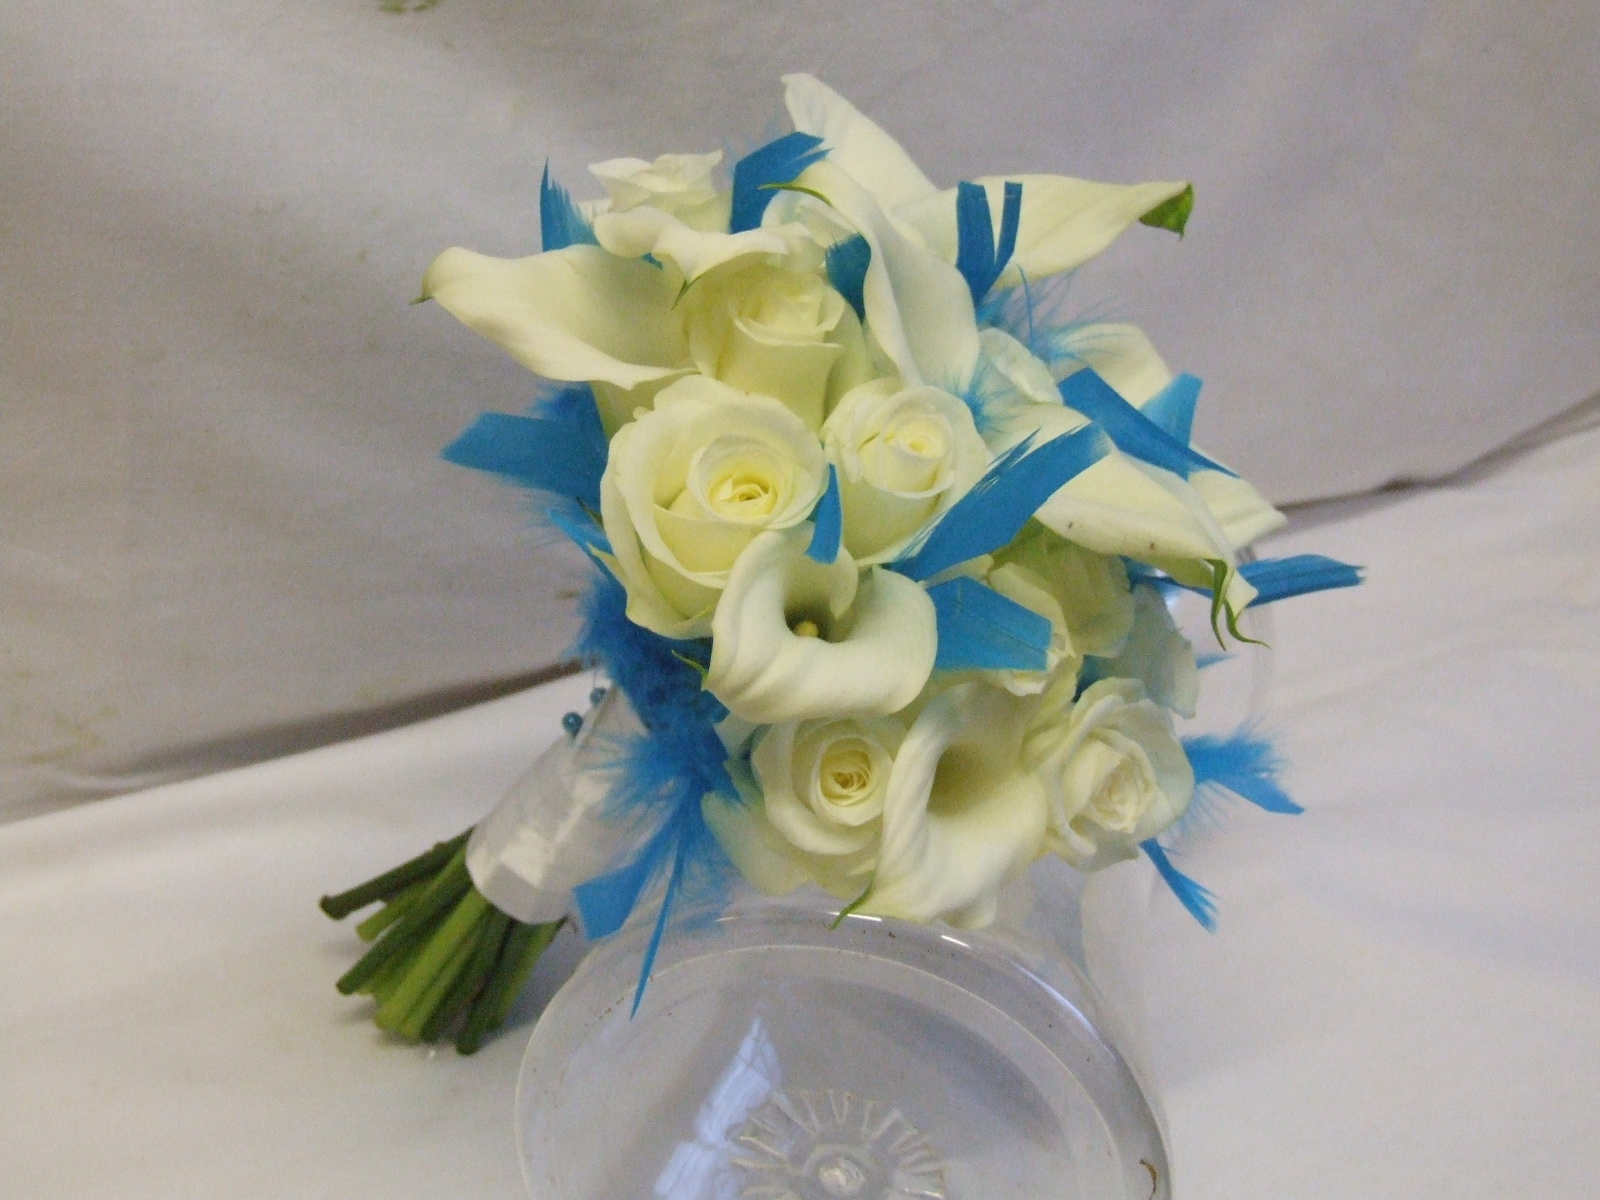 RJ's Florist: Turquoise And White Wedding Flowers